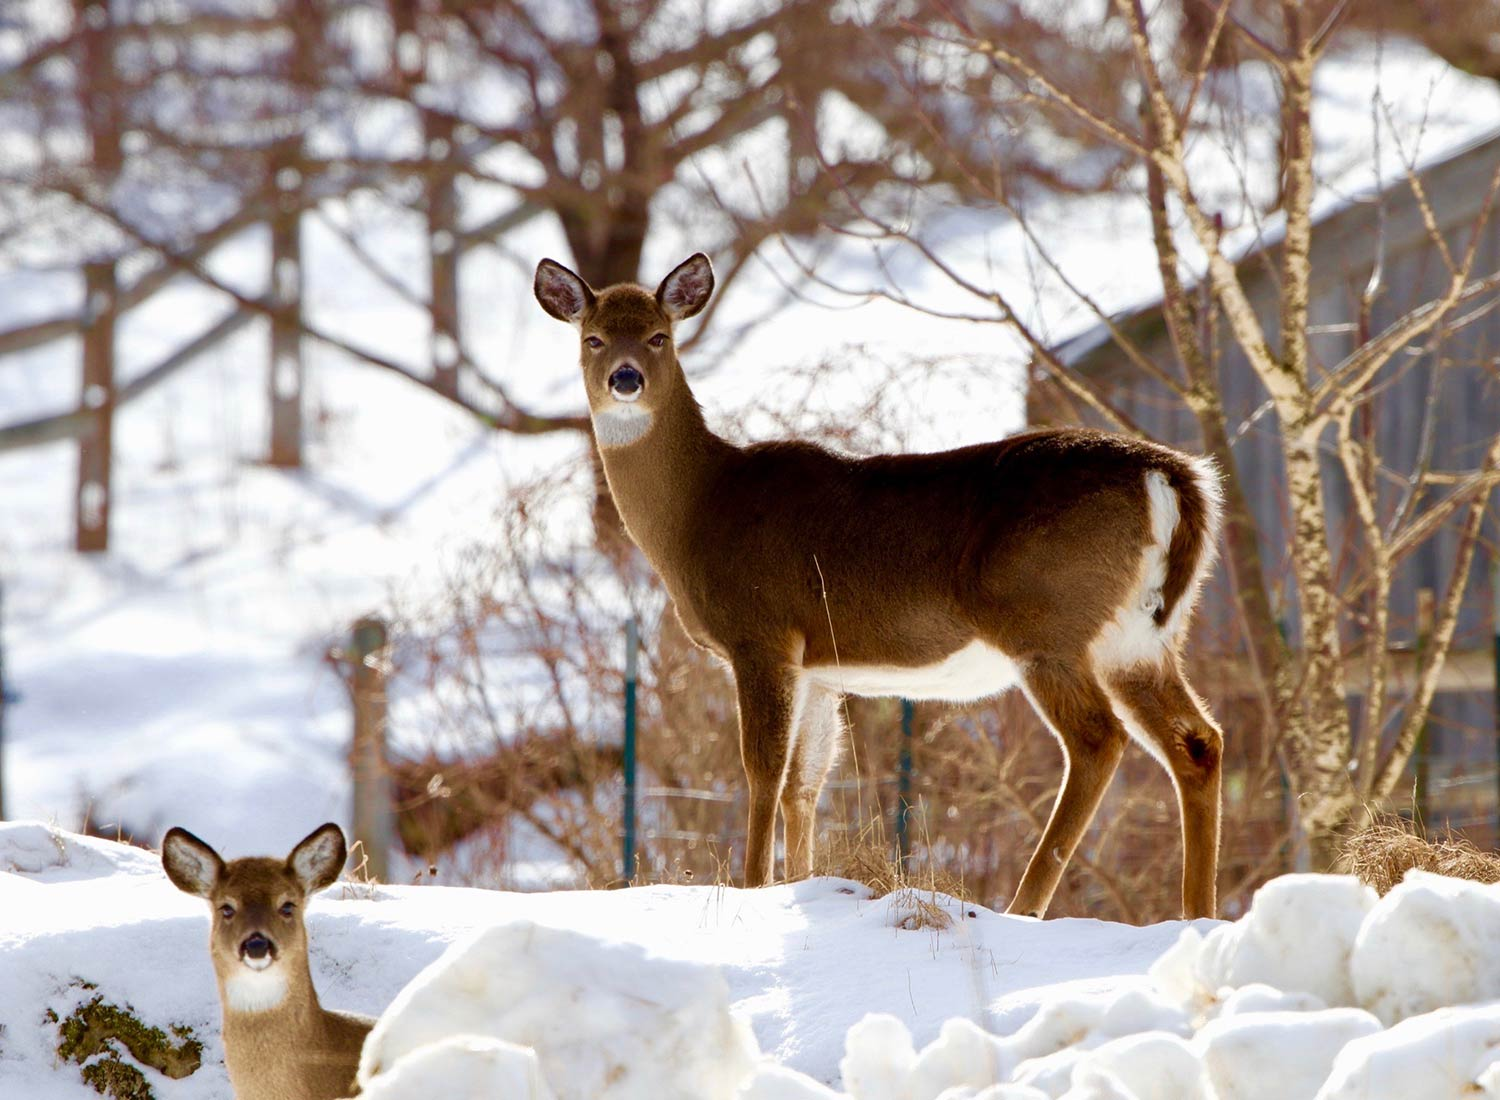 Sanctuary at SHO: redefining animal agriculture | partnering with wildlife, like the white tail deer, to steward non-harming perennial food systems while ensuring safe & healthy habitat